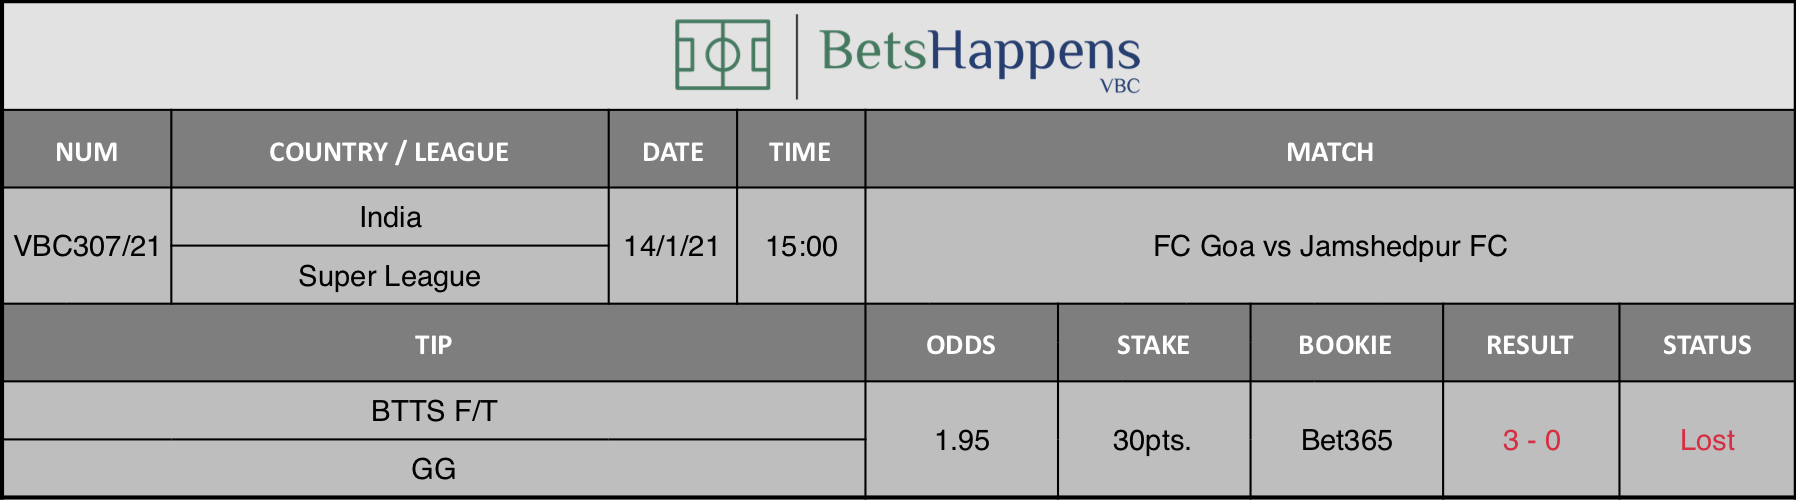 Results of our tip for the FC Goa vs Jamshedpur FC  match where BTTS F/T  GG is recommended.